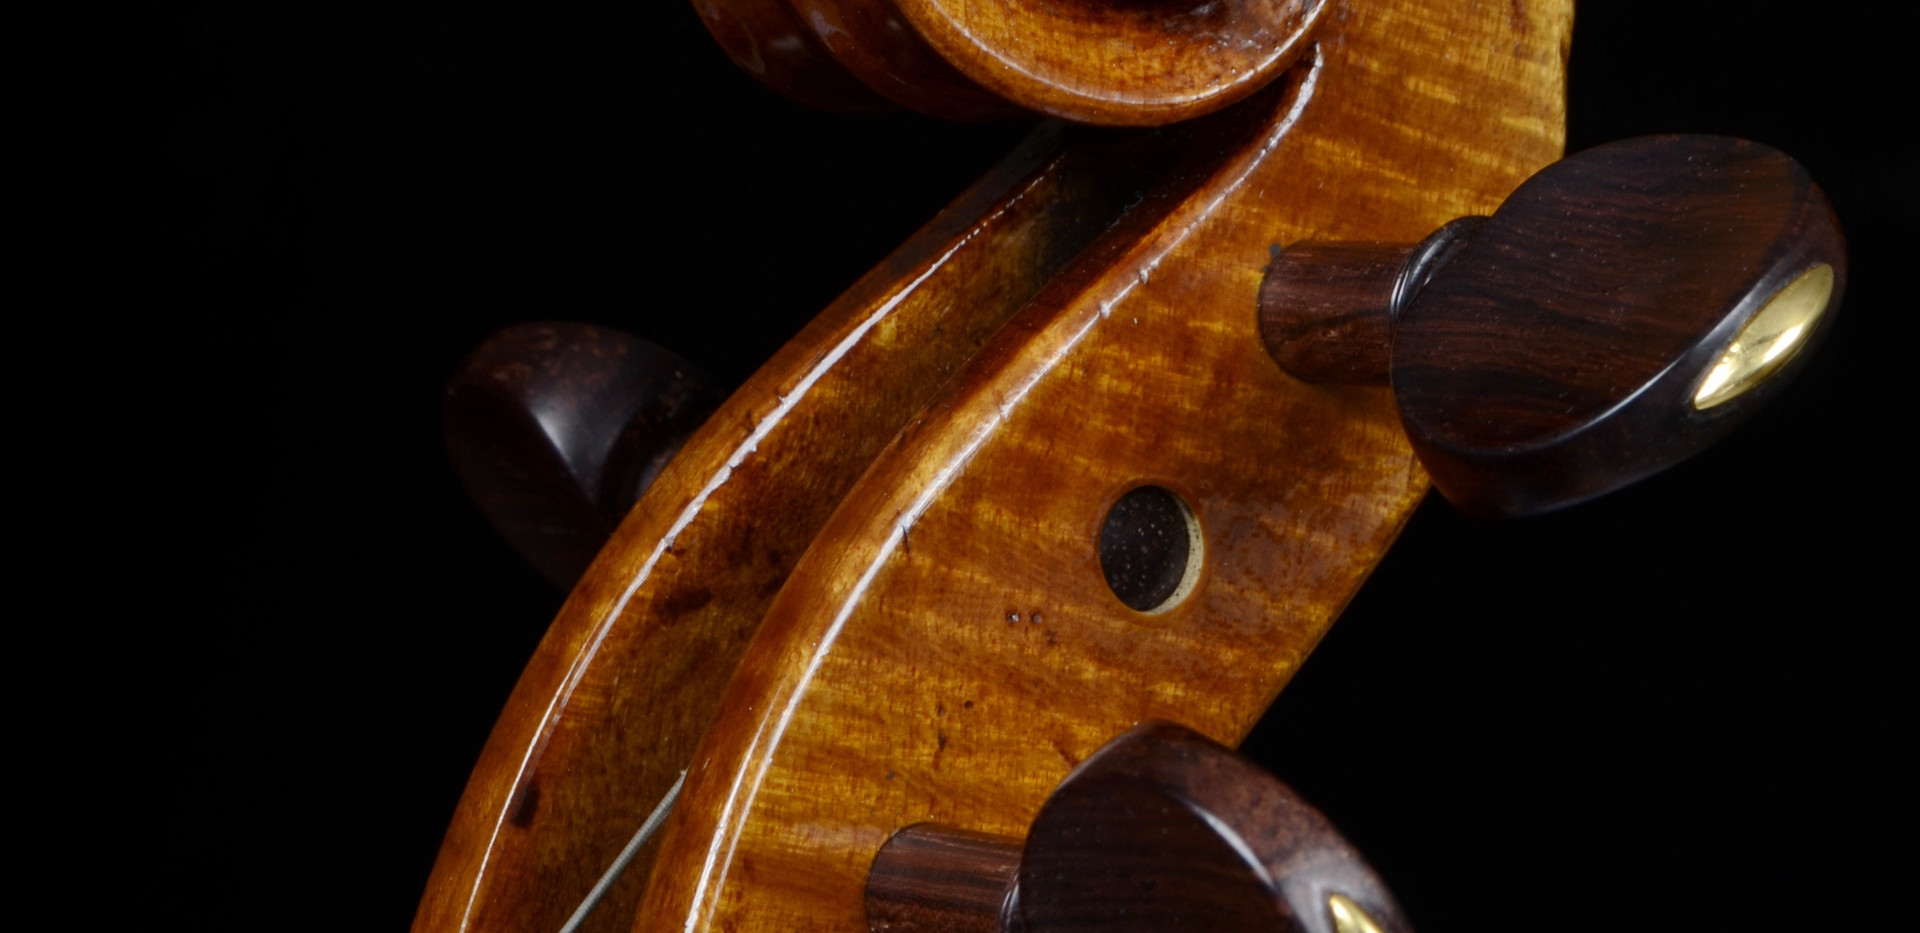 Scroll detail, violin made by Mark Jennings C2016